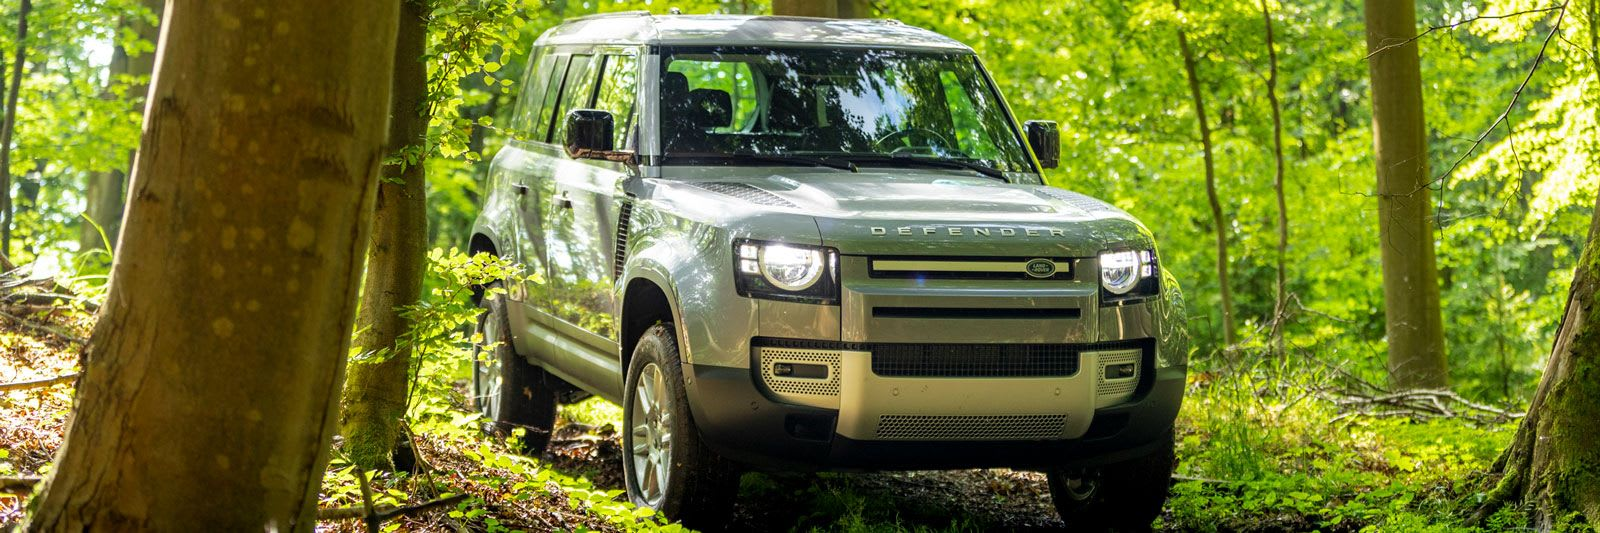 land rover rover defender in woodland